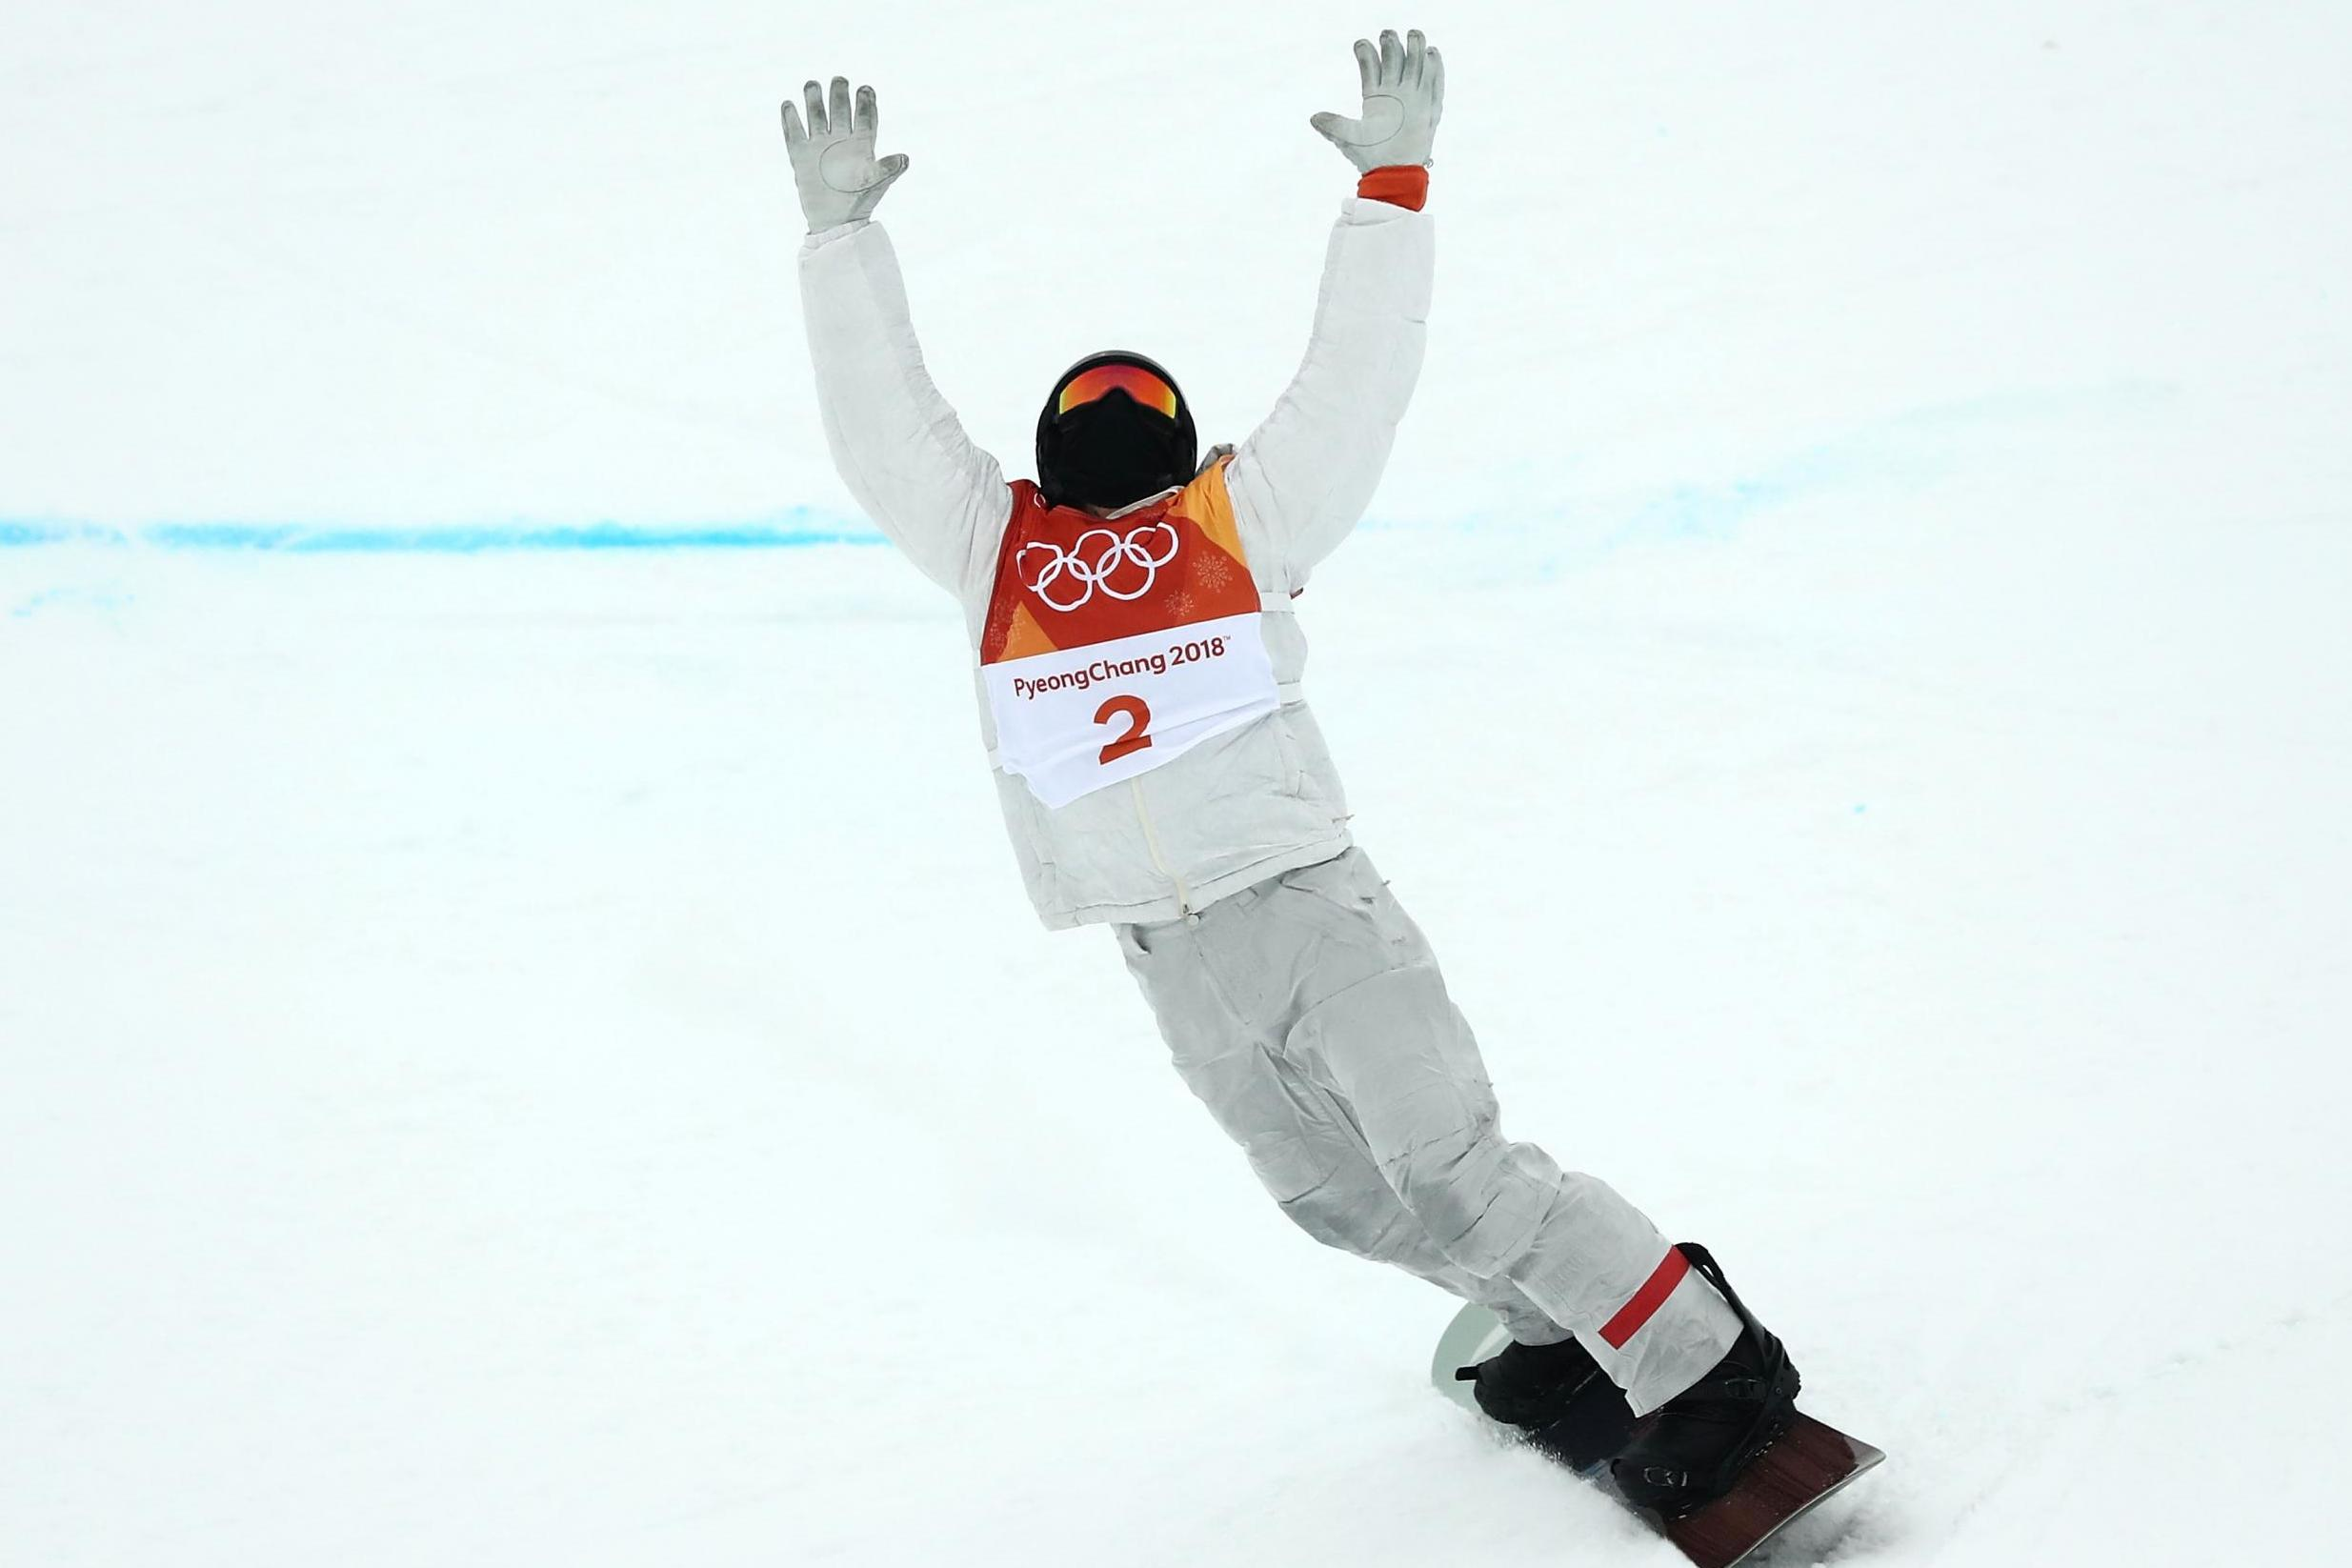 shaun white lands third olympic gold and historic 4